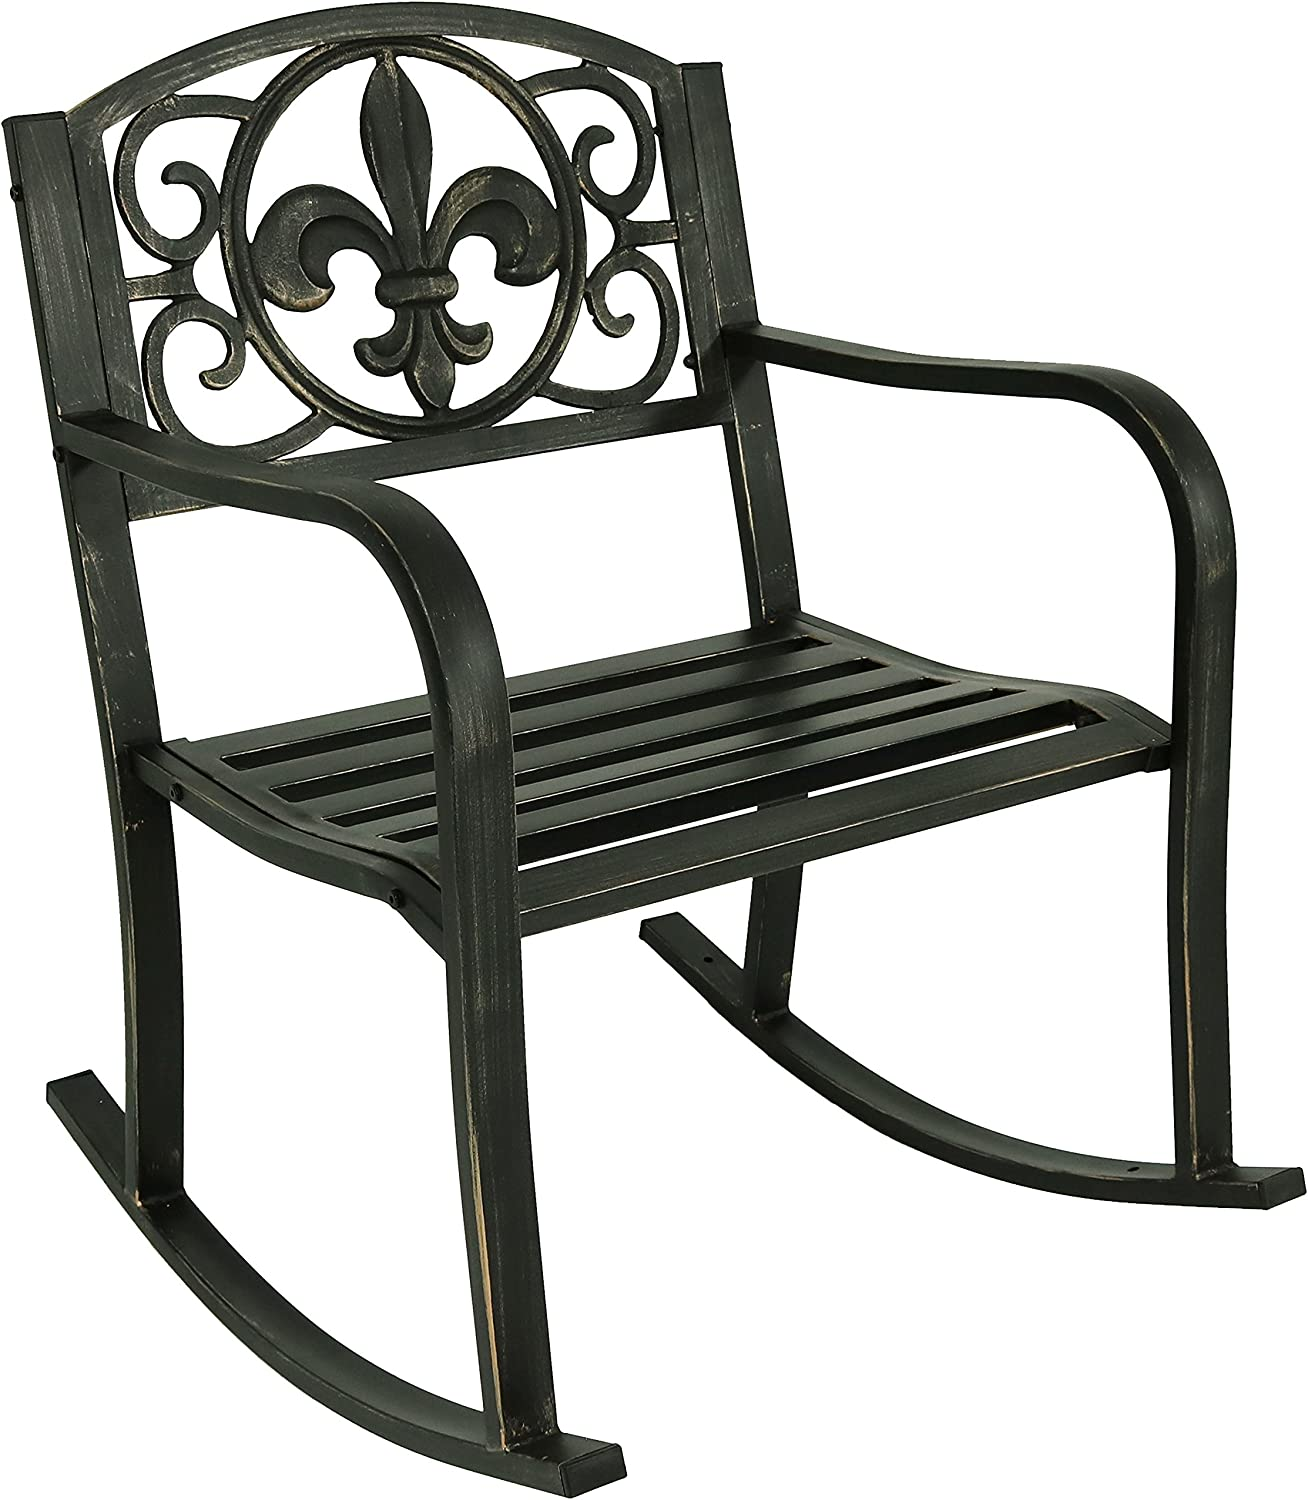 Sunnydaze Outdoor Patio Rocking Chair, Deck and Porch Rocker Seat, Durable Metal Cast Iron, Fleur-de-Lis Design